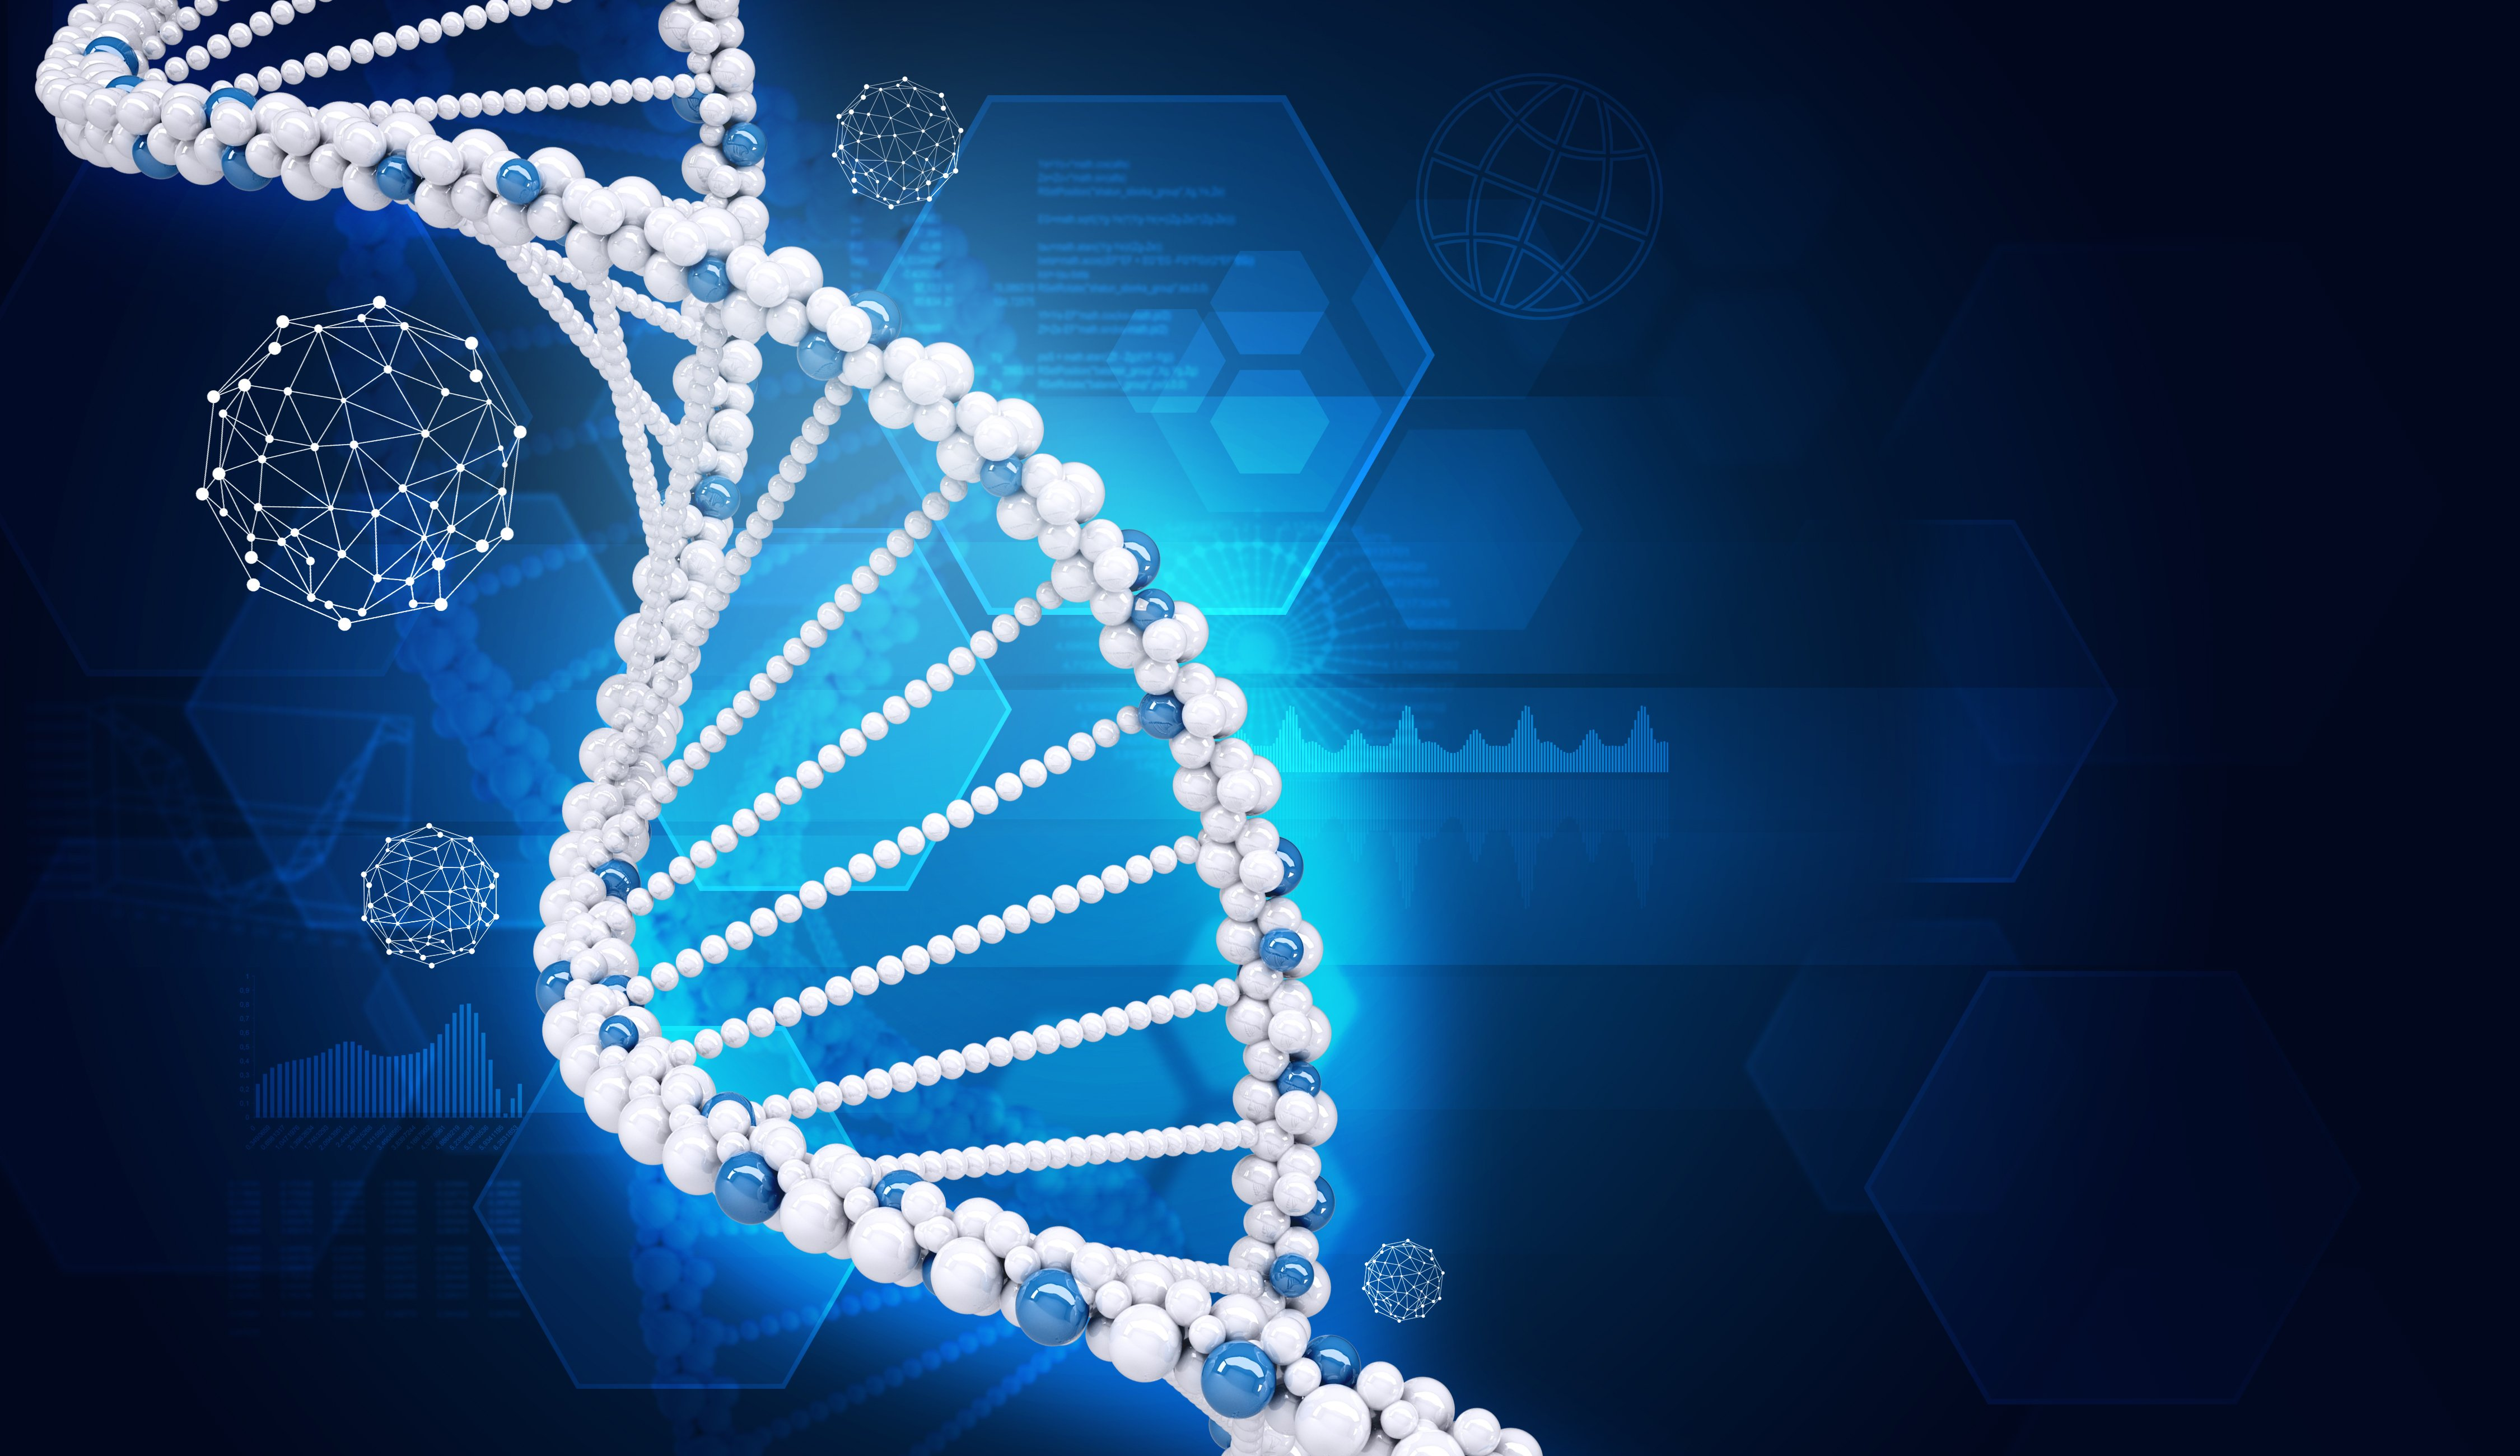 Dna Background   PowerPoint Backgrounds for PowerPoint Templates 4500x2600